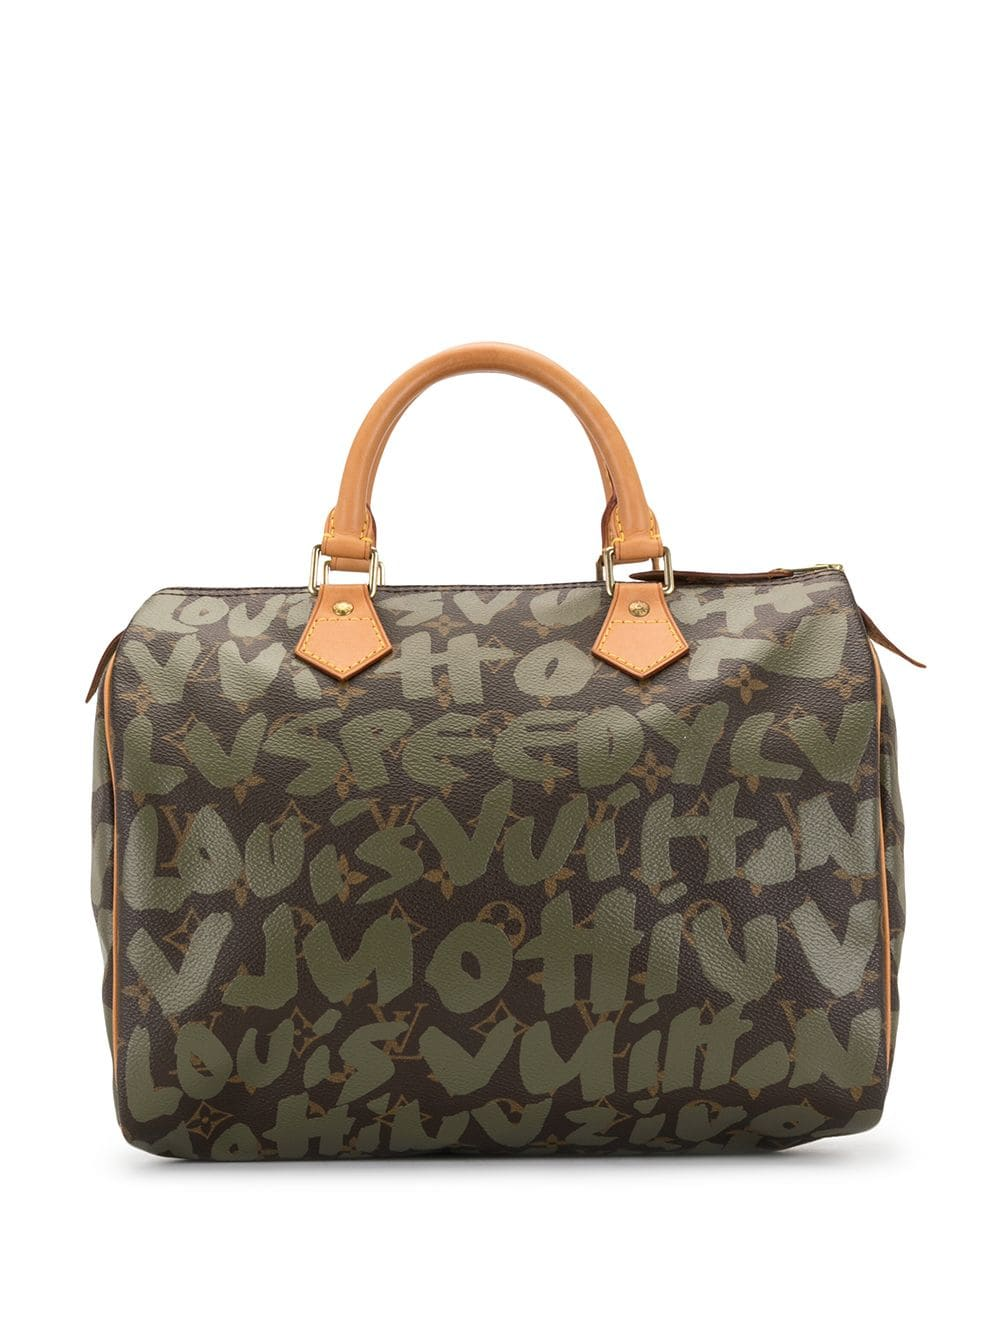 Louis Vuitton 2001 pre-owned Speedy Handtasche, 30cm - Braun